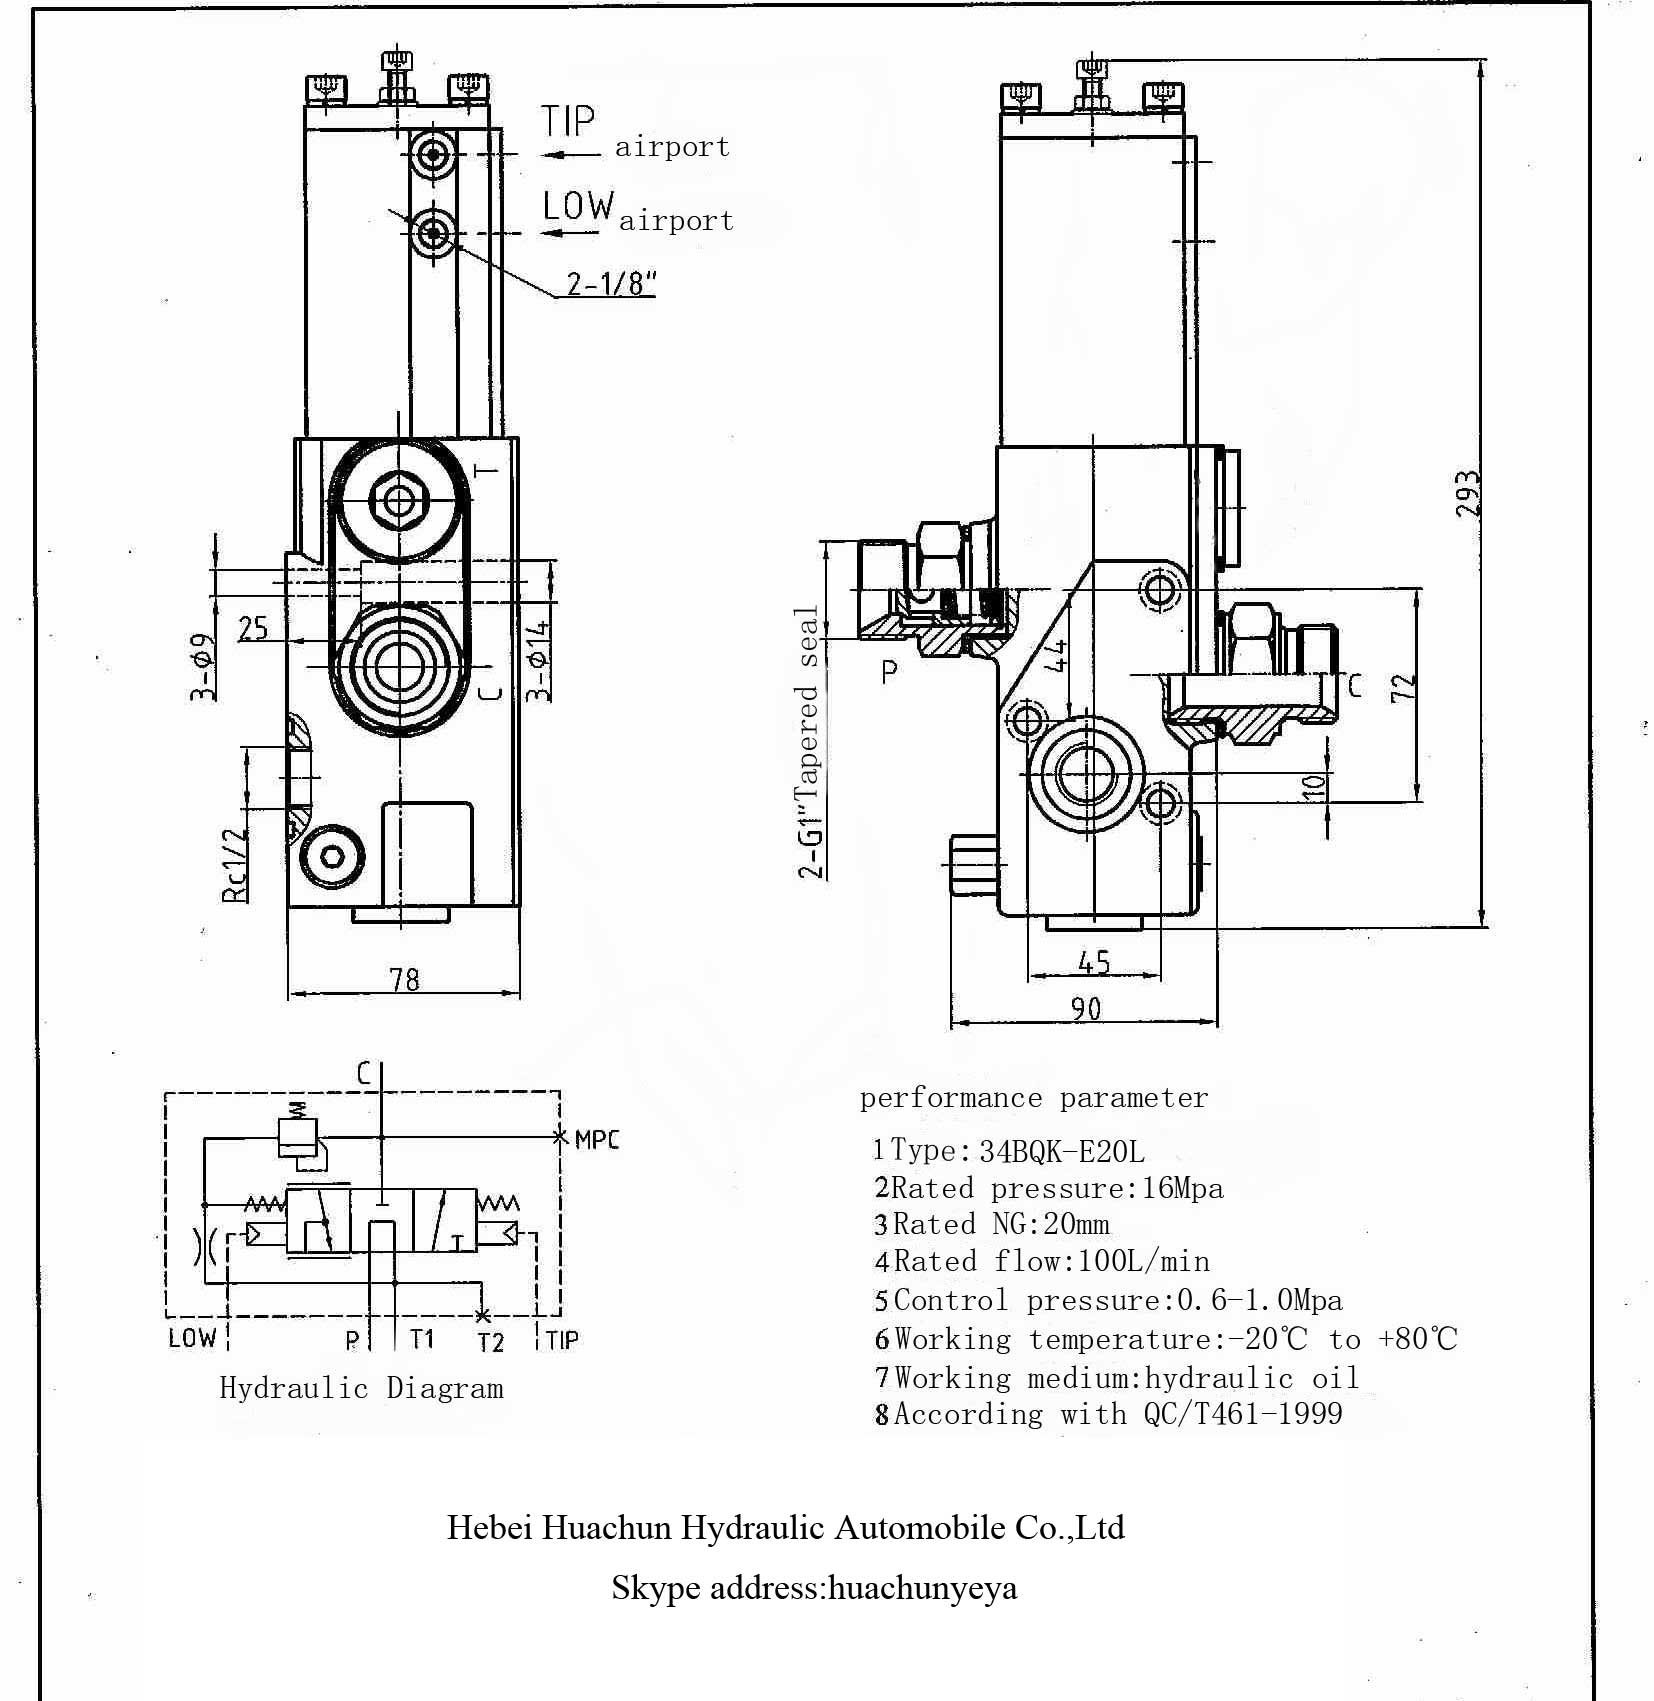 2004 F550 Fuse Box Diagram. Diagrams. Wiring Diagram Images